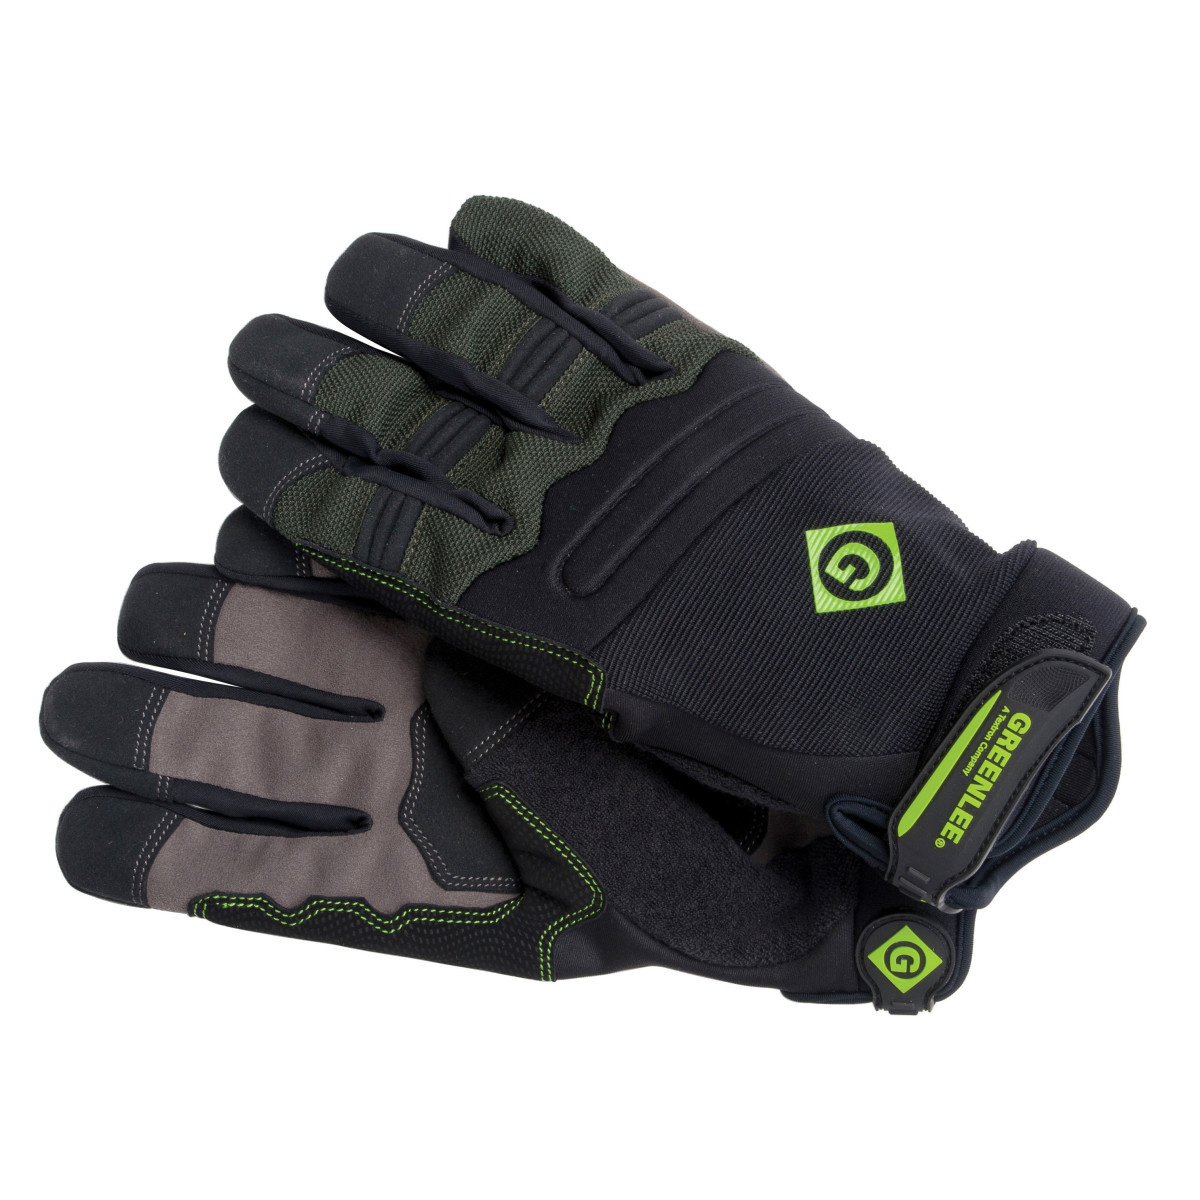 Greenlee 0358-14XL TRADESMAN Gloves - Xtra Large